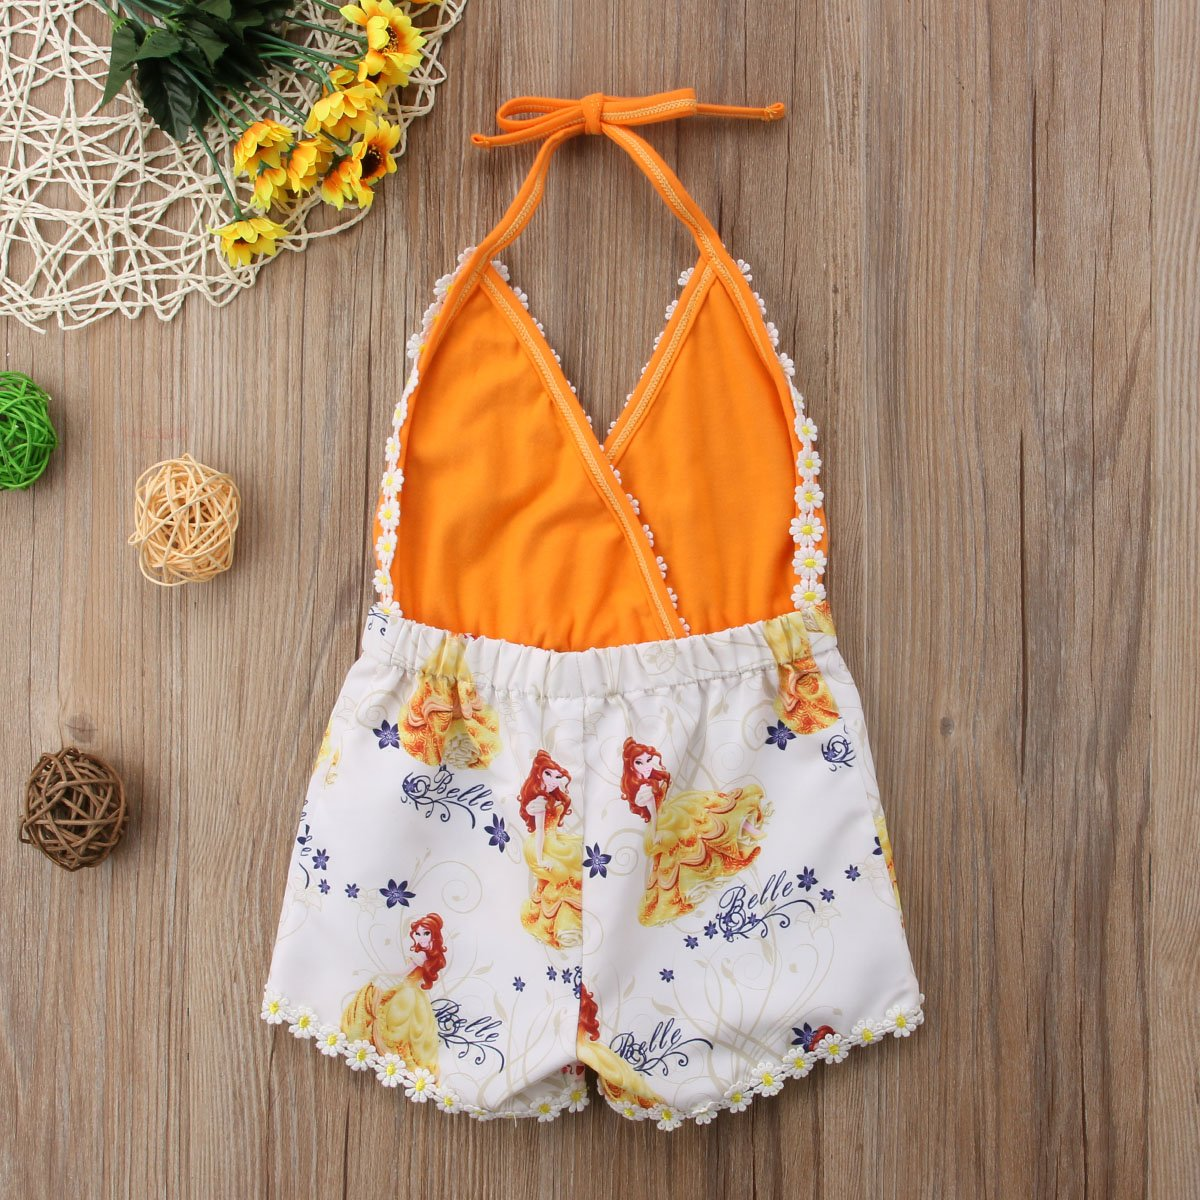 Wallarenear Toddler Newborn Baby Girl Summer One Pieces Floral Lace Romper V-Neck Jumpsuit Sunsuit Clothes